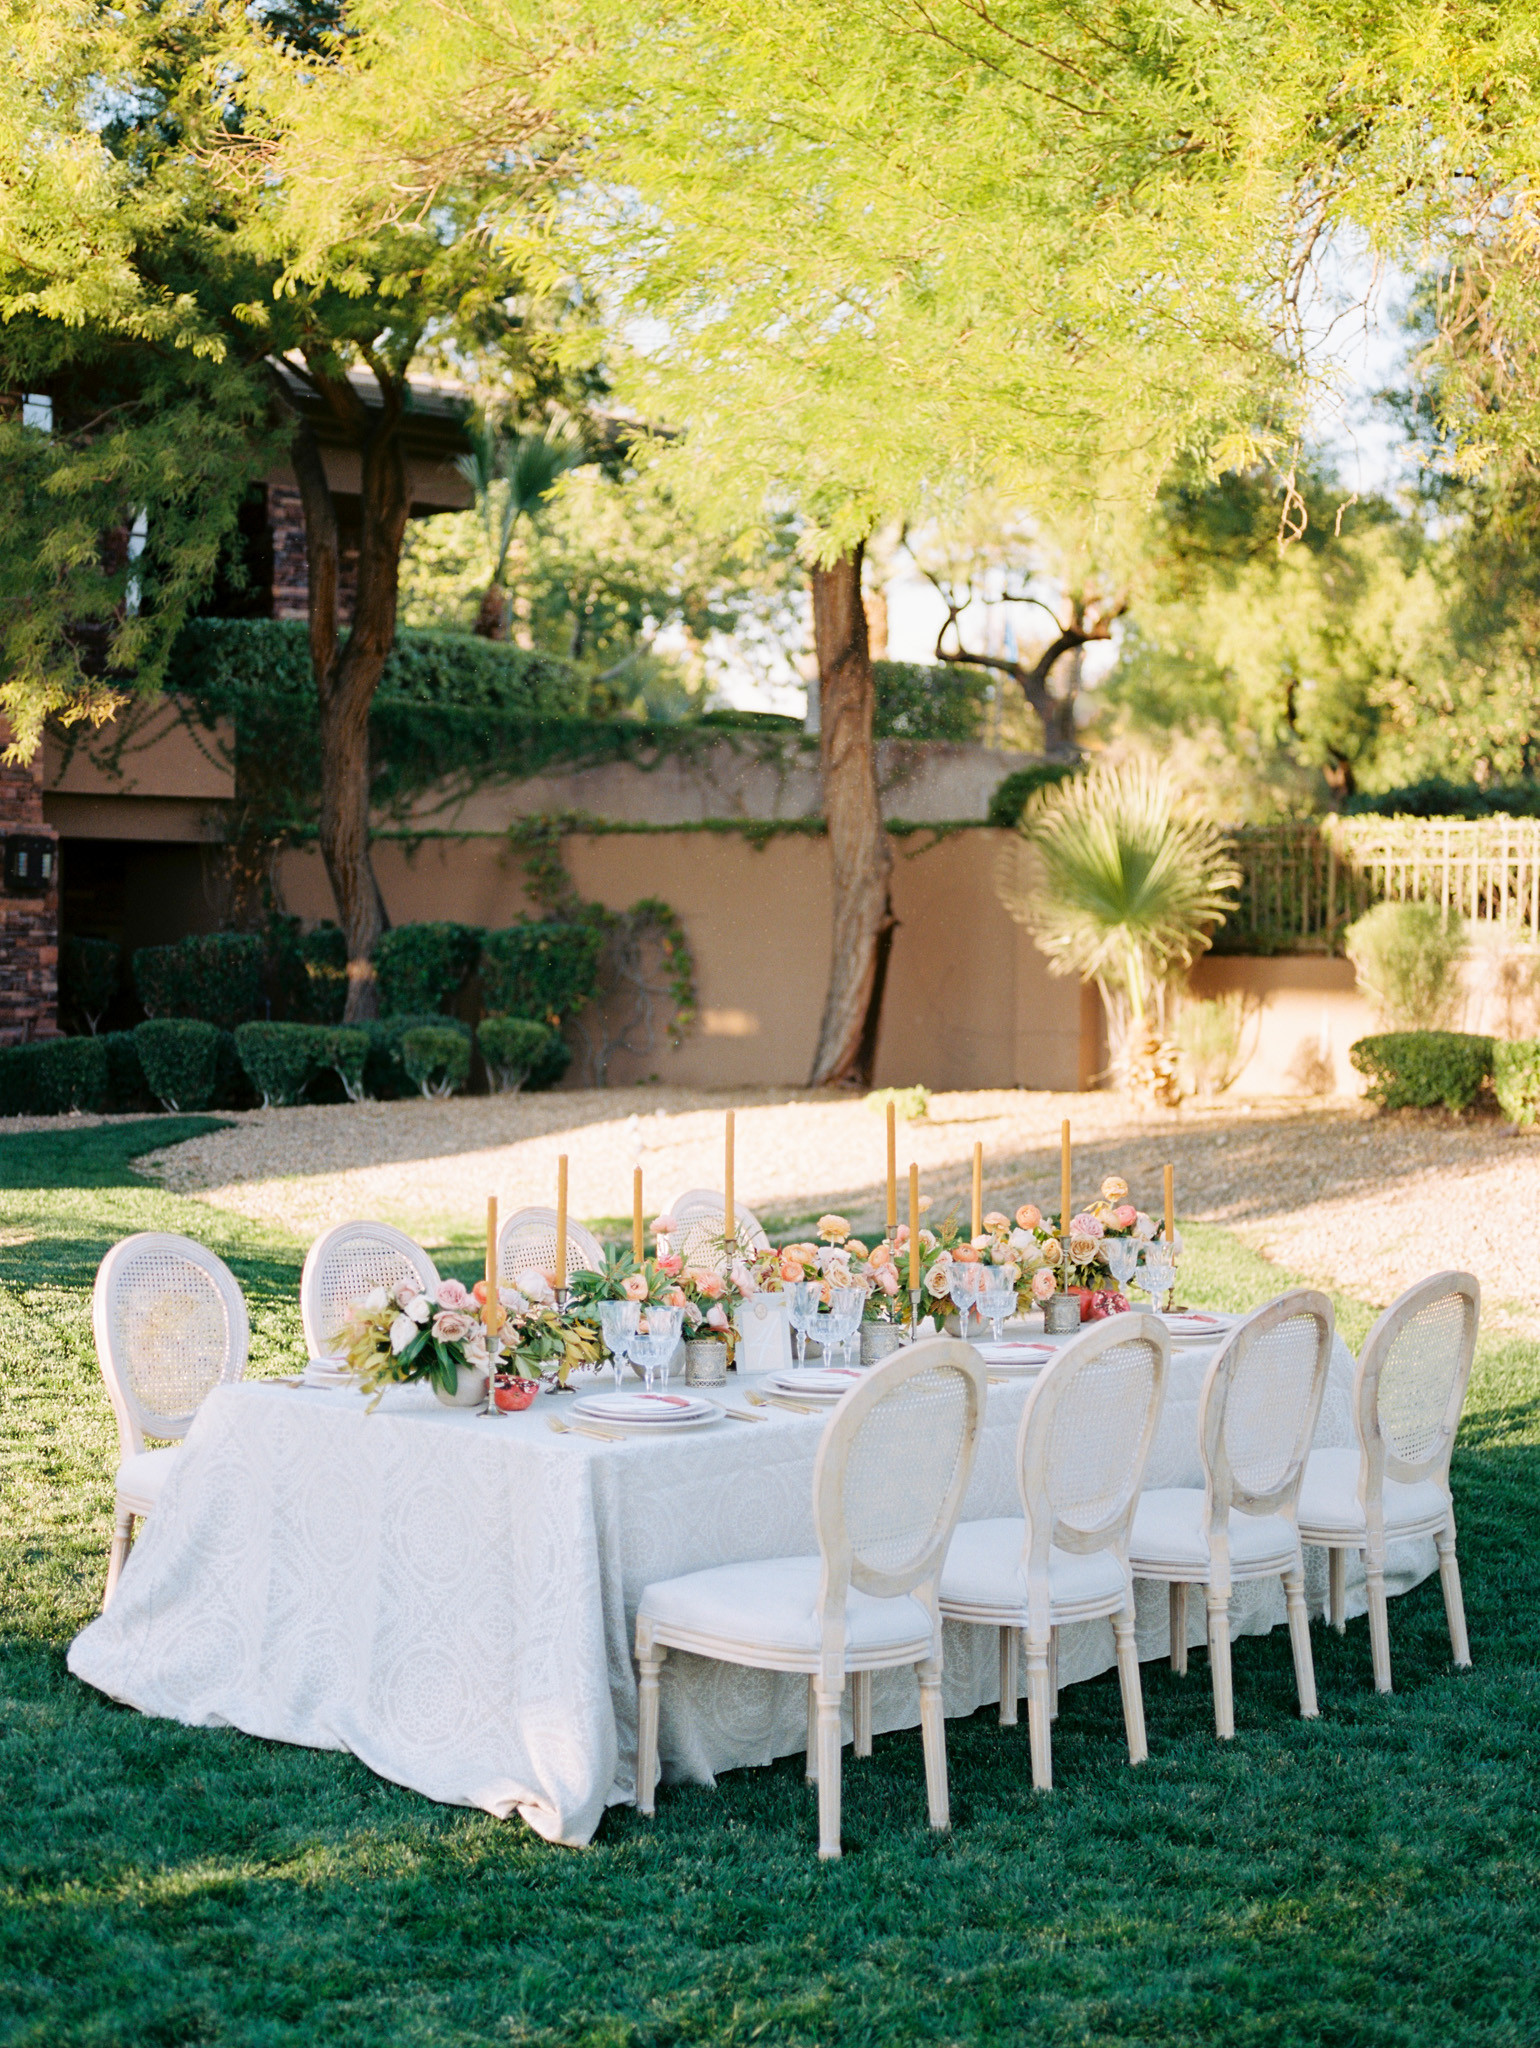 INTIMATE DINNER SETTING IN SHADES OF MUSTARD, CORAL, AND TAUPE. PHOTO: KRISTEN KAY